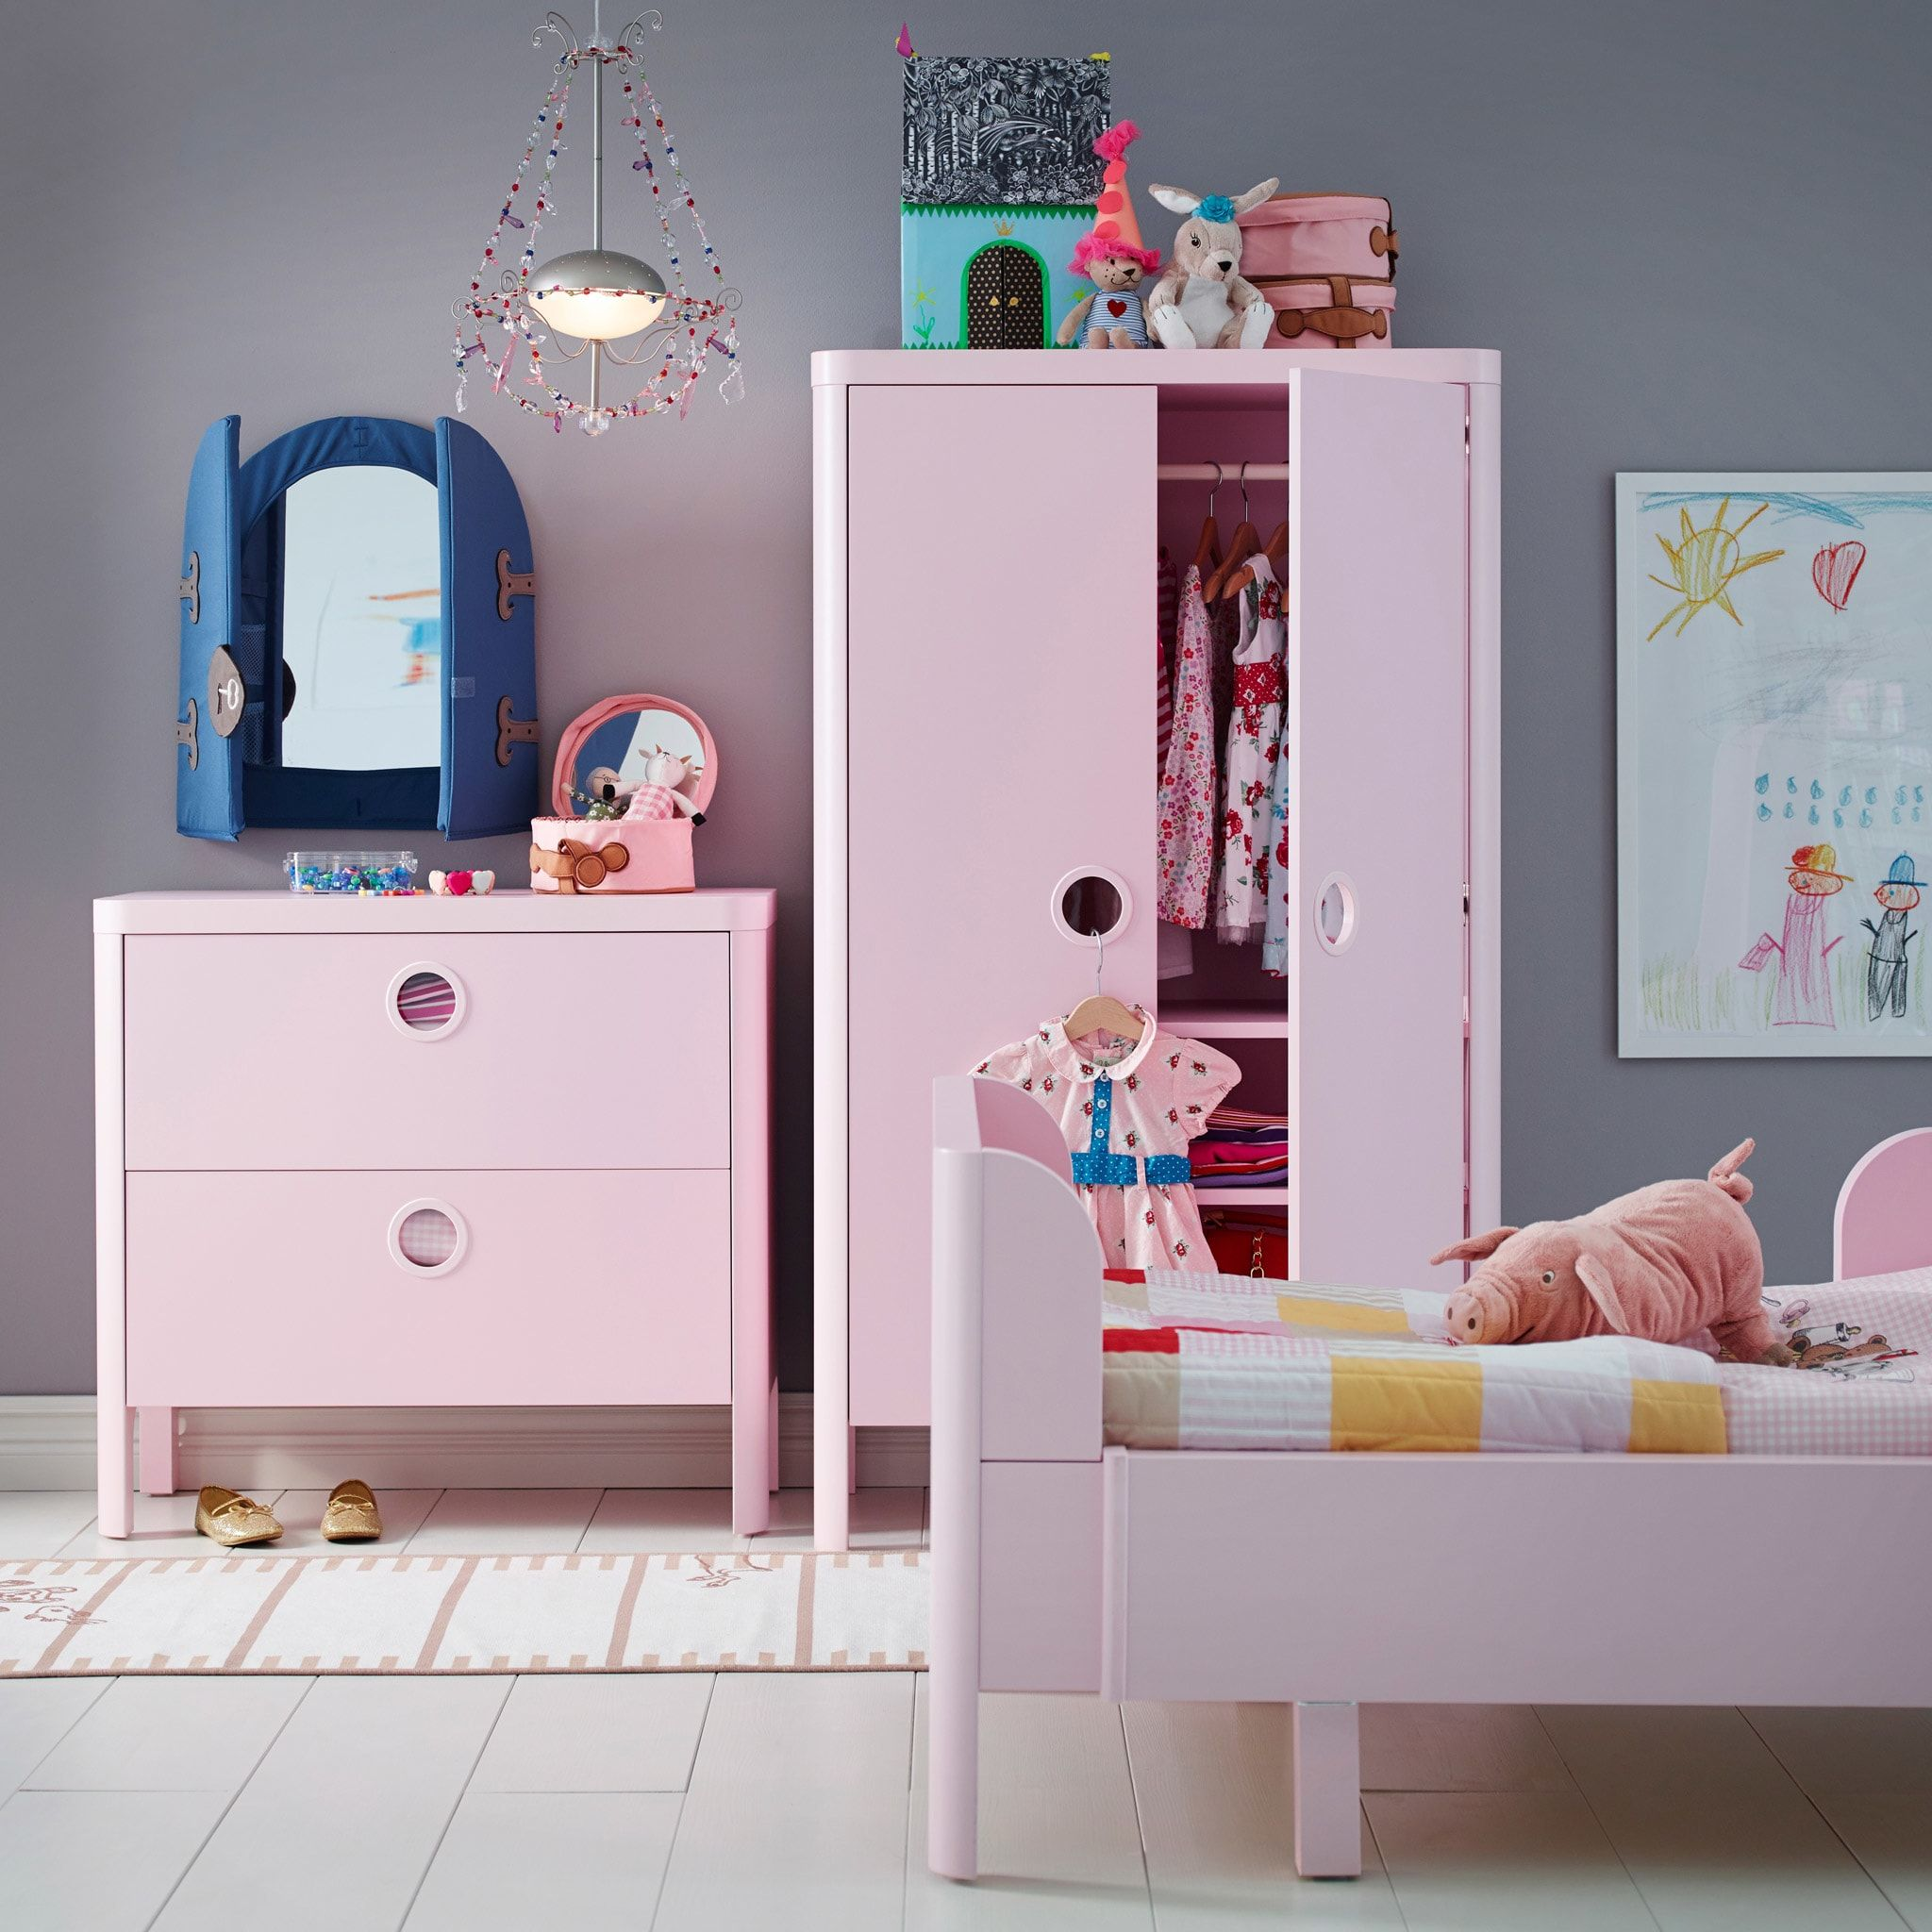 20 Gorgeous Kids Room Wardrobe Welcome For You To My Blog Site Within This Time I Will Demonstrate Kids Room Furniture Ikea Kids Room Kids Bedroom Furniture